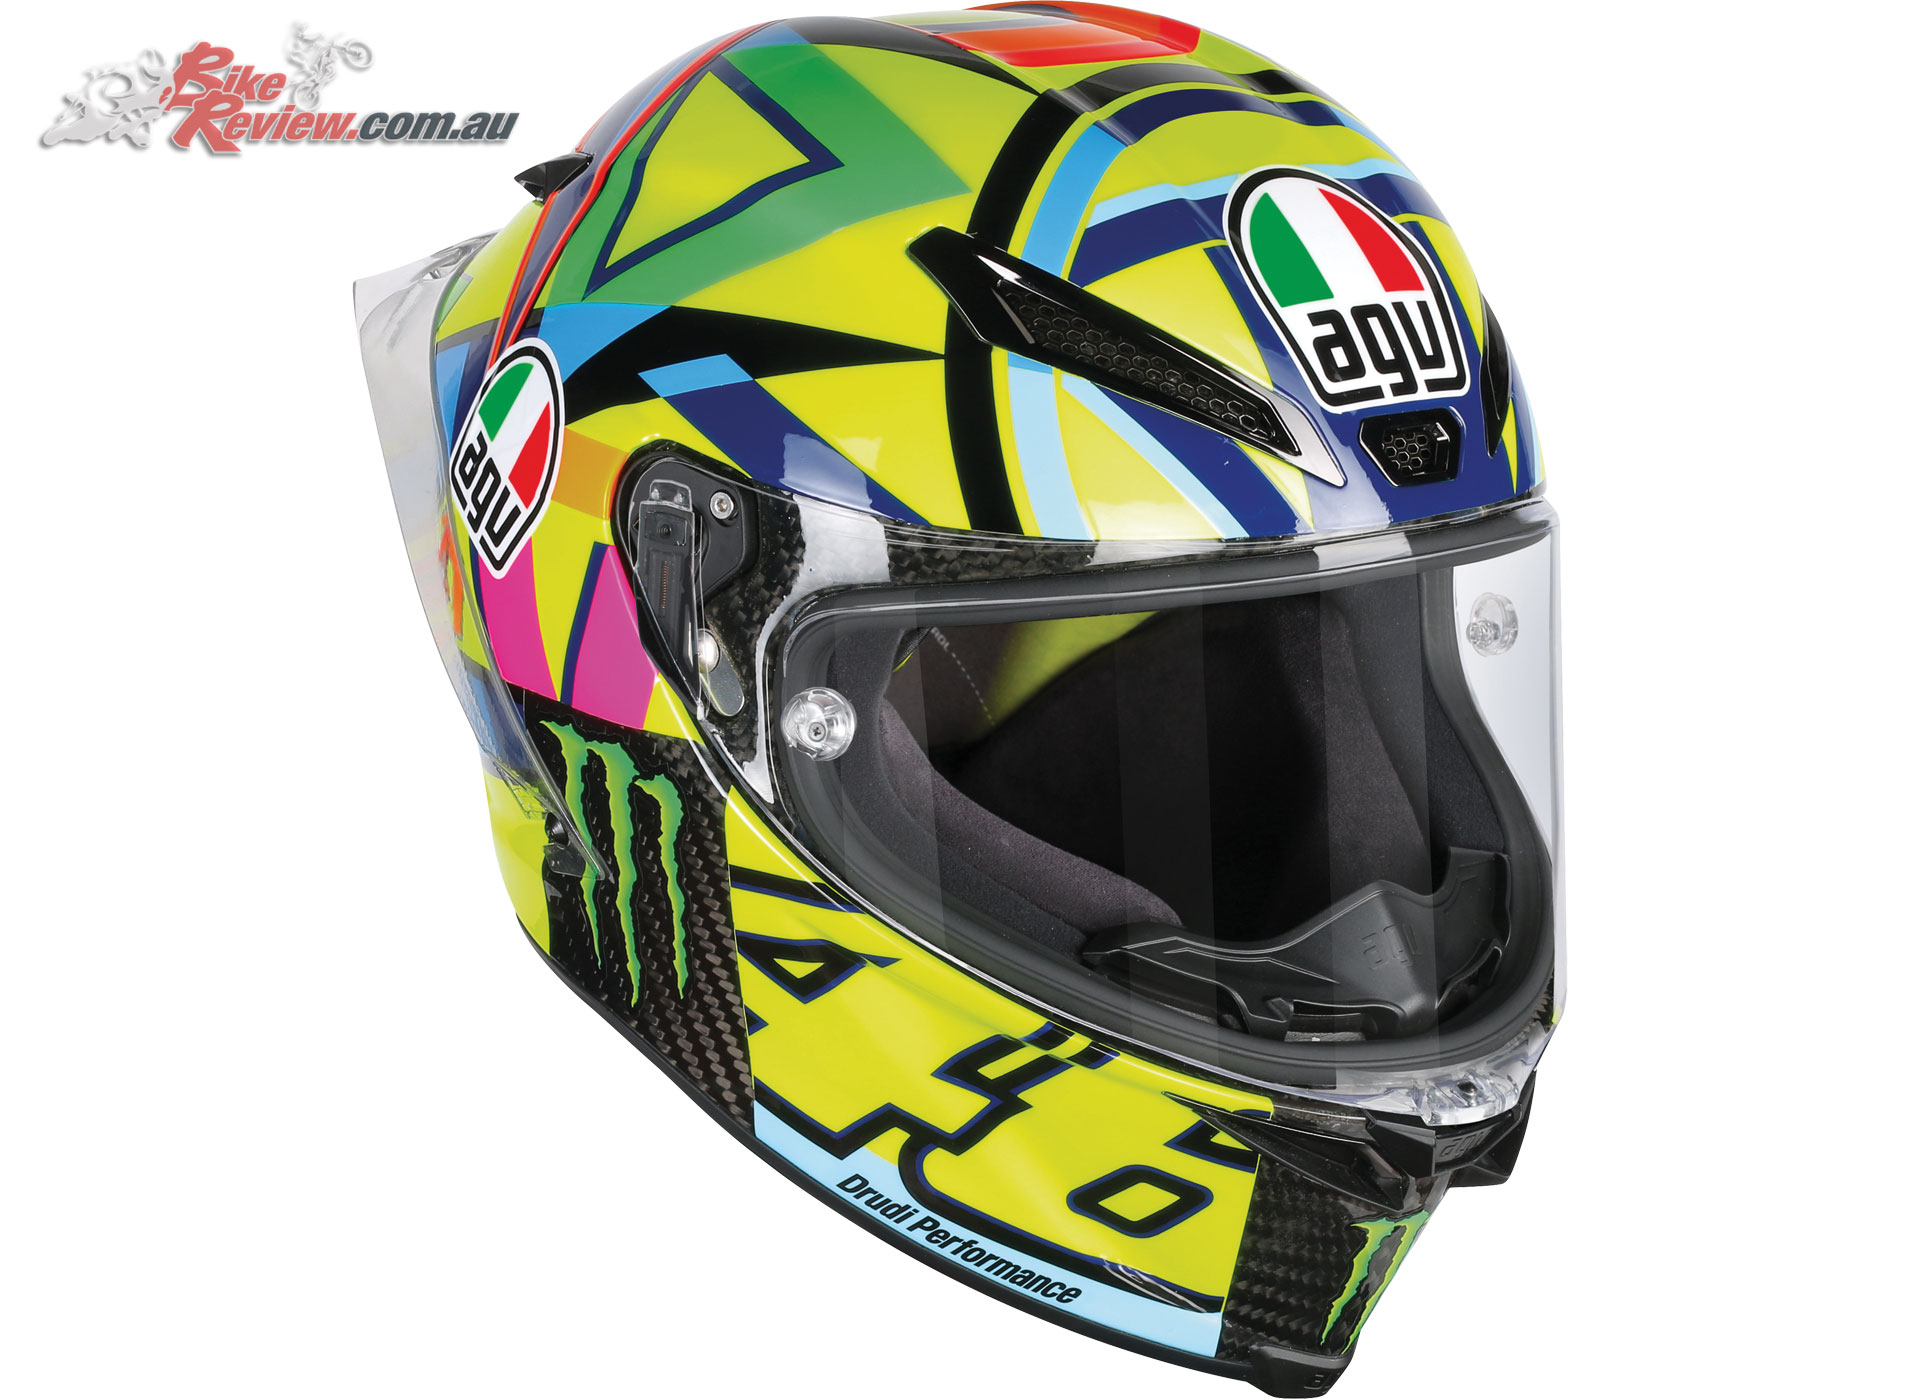 AGV Helmets will be exclusively distributed by Link International in Australia